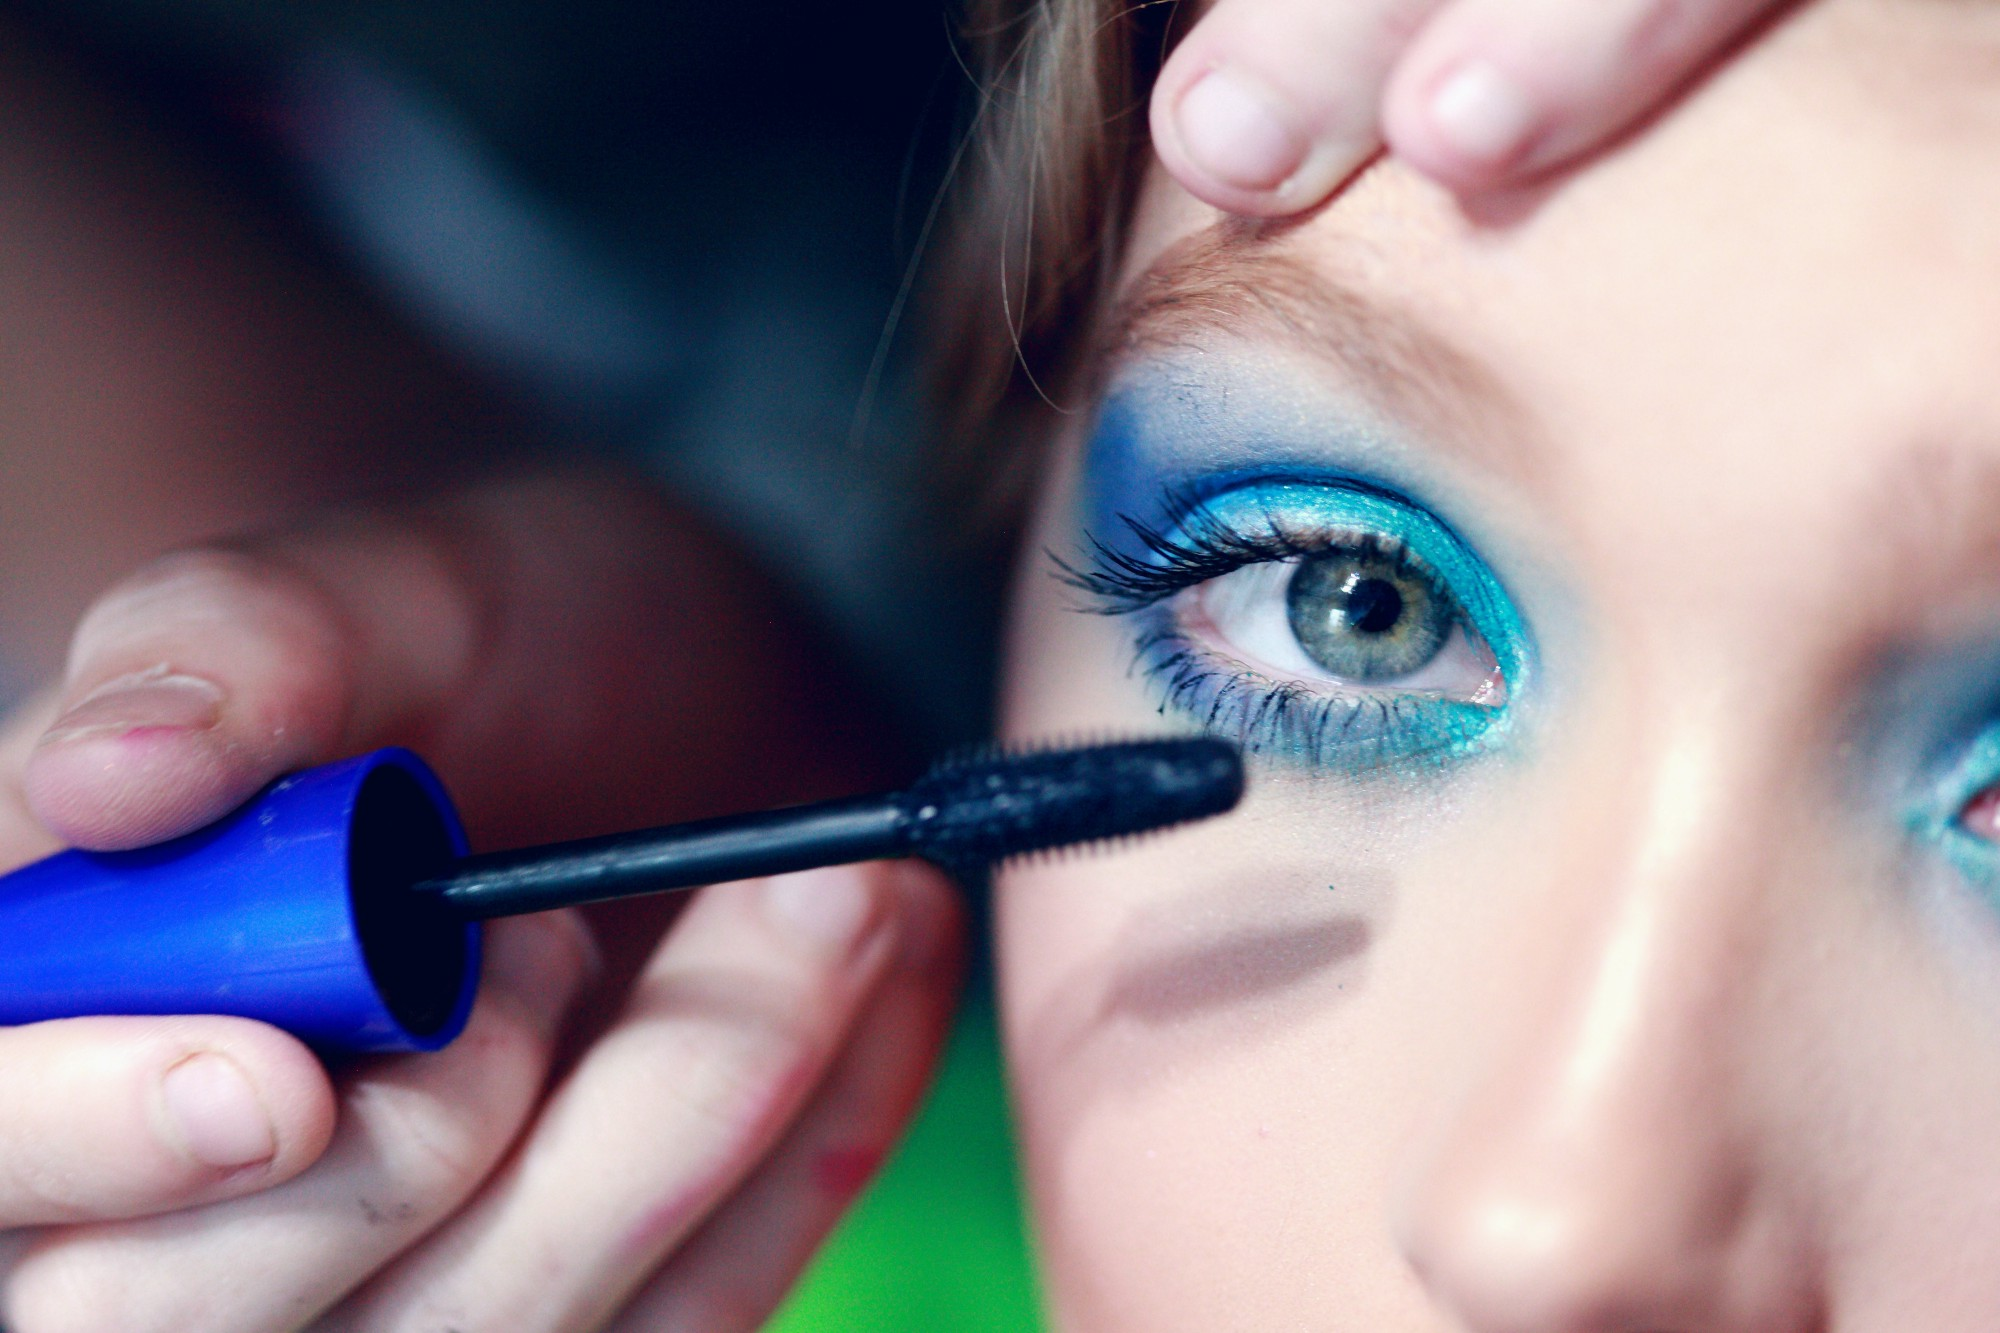 A blue mascara being applied to a woman's sad looking eyes.